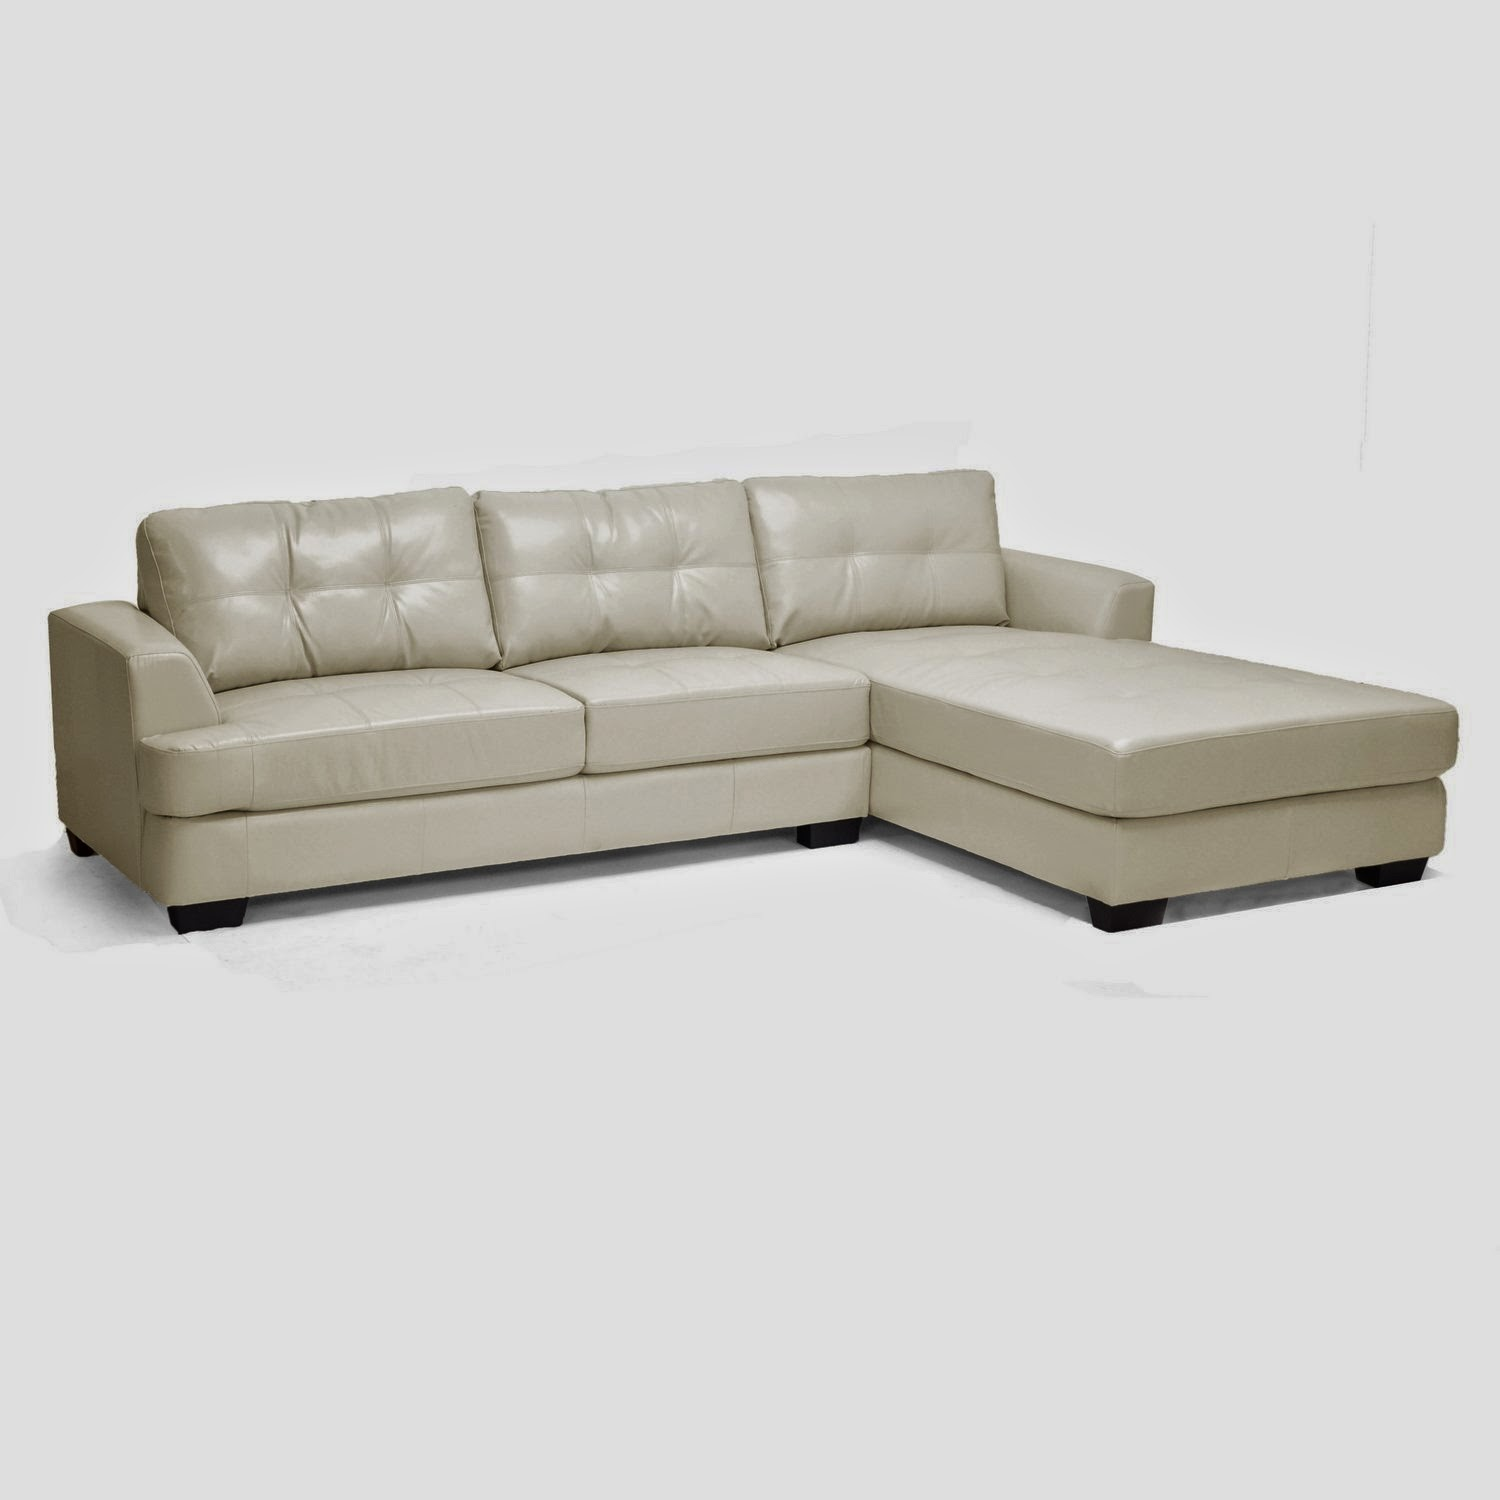 Couch with chaise leather couch with chaise lounge for Black leather sectional sofa with chaise